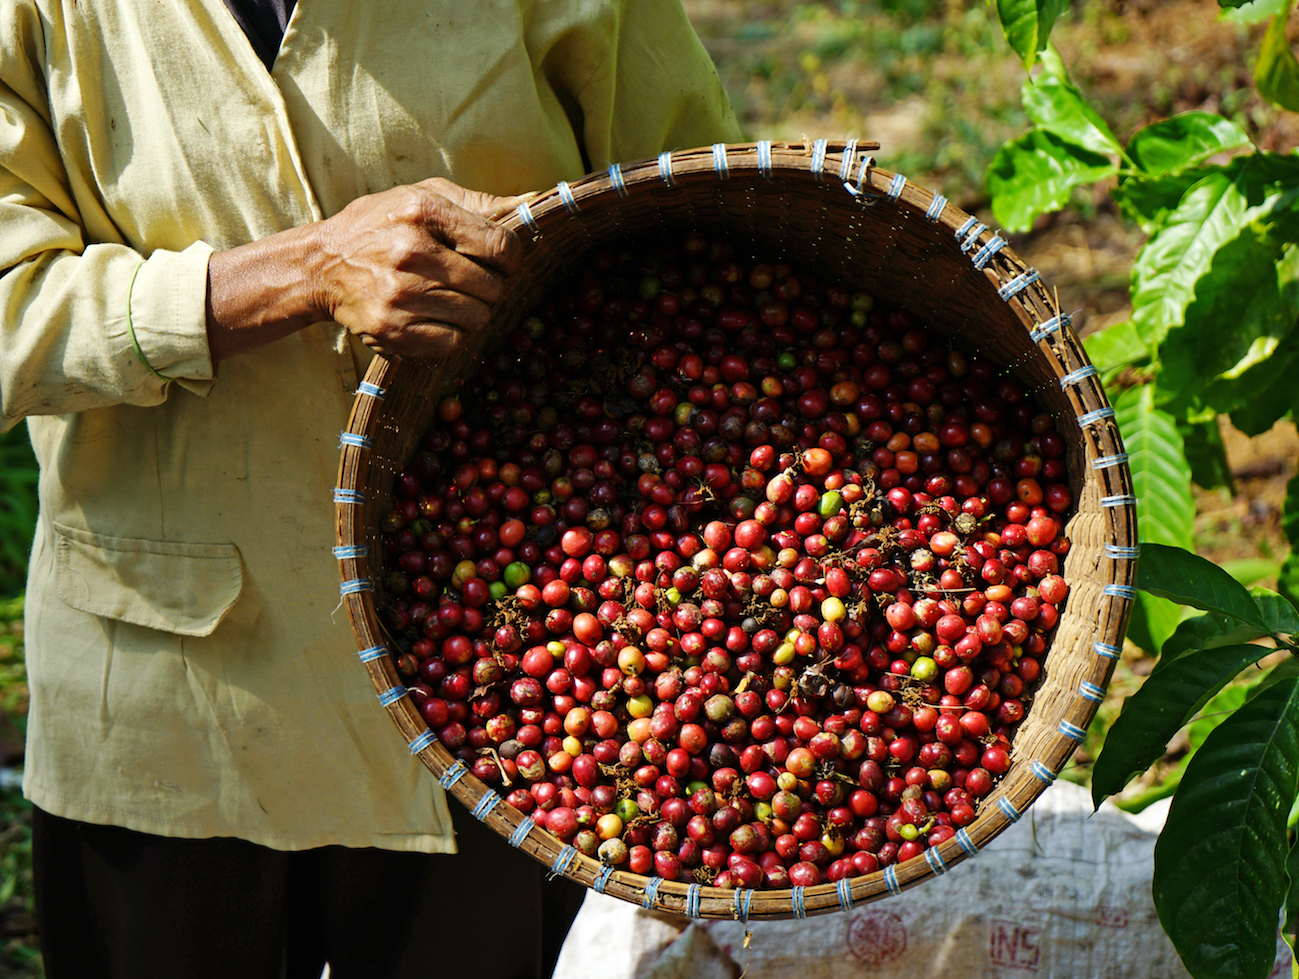 Coffee farms found using slave labor raise alarming regulation questions